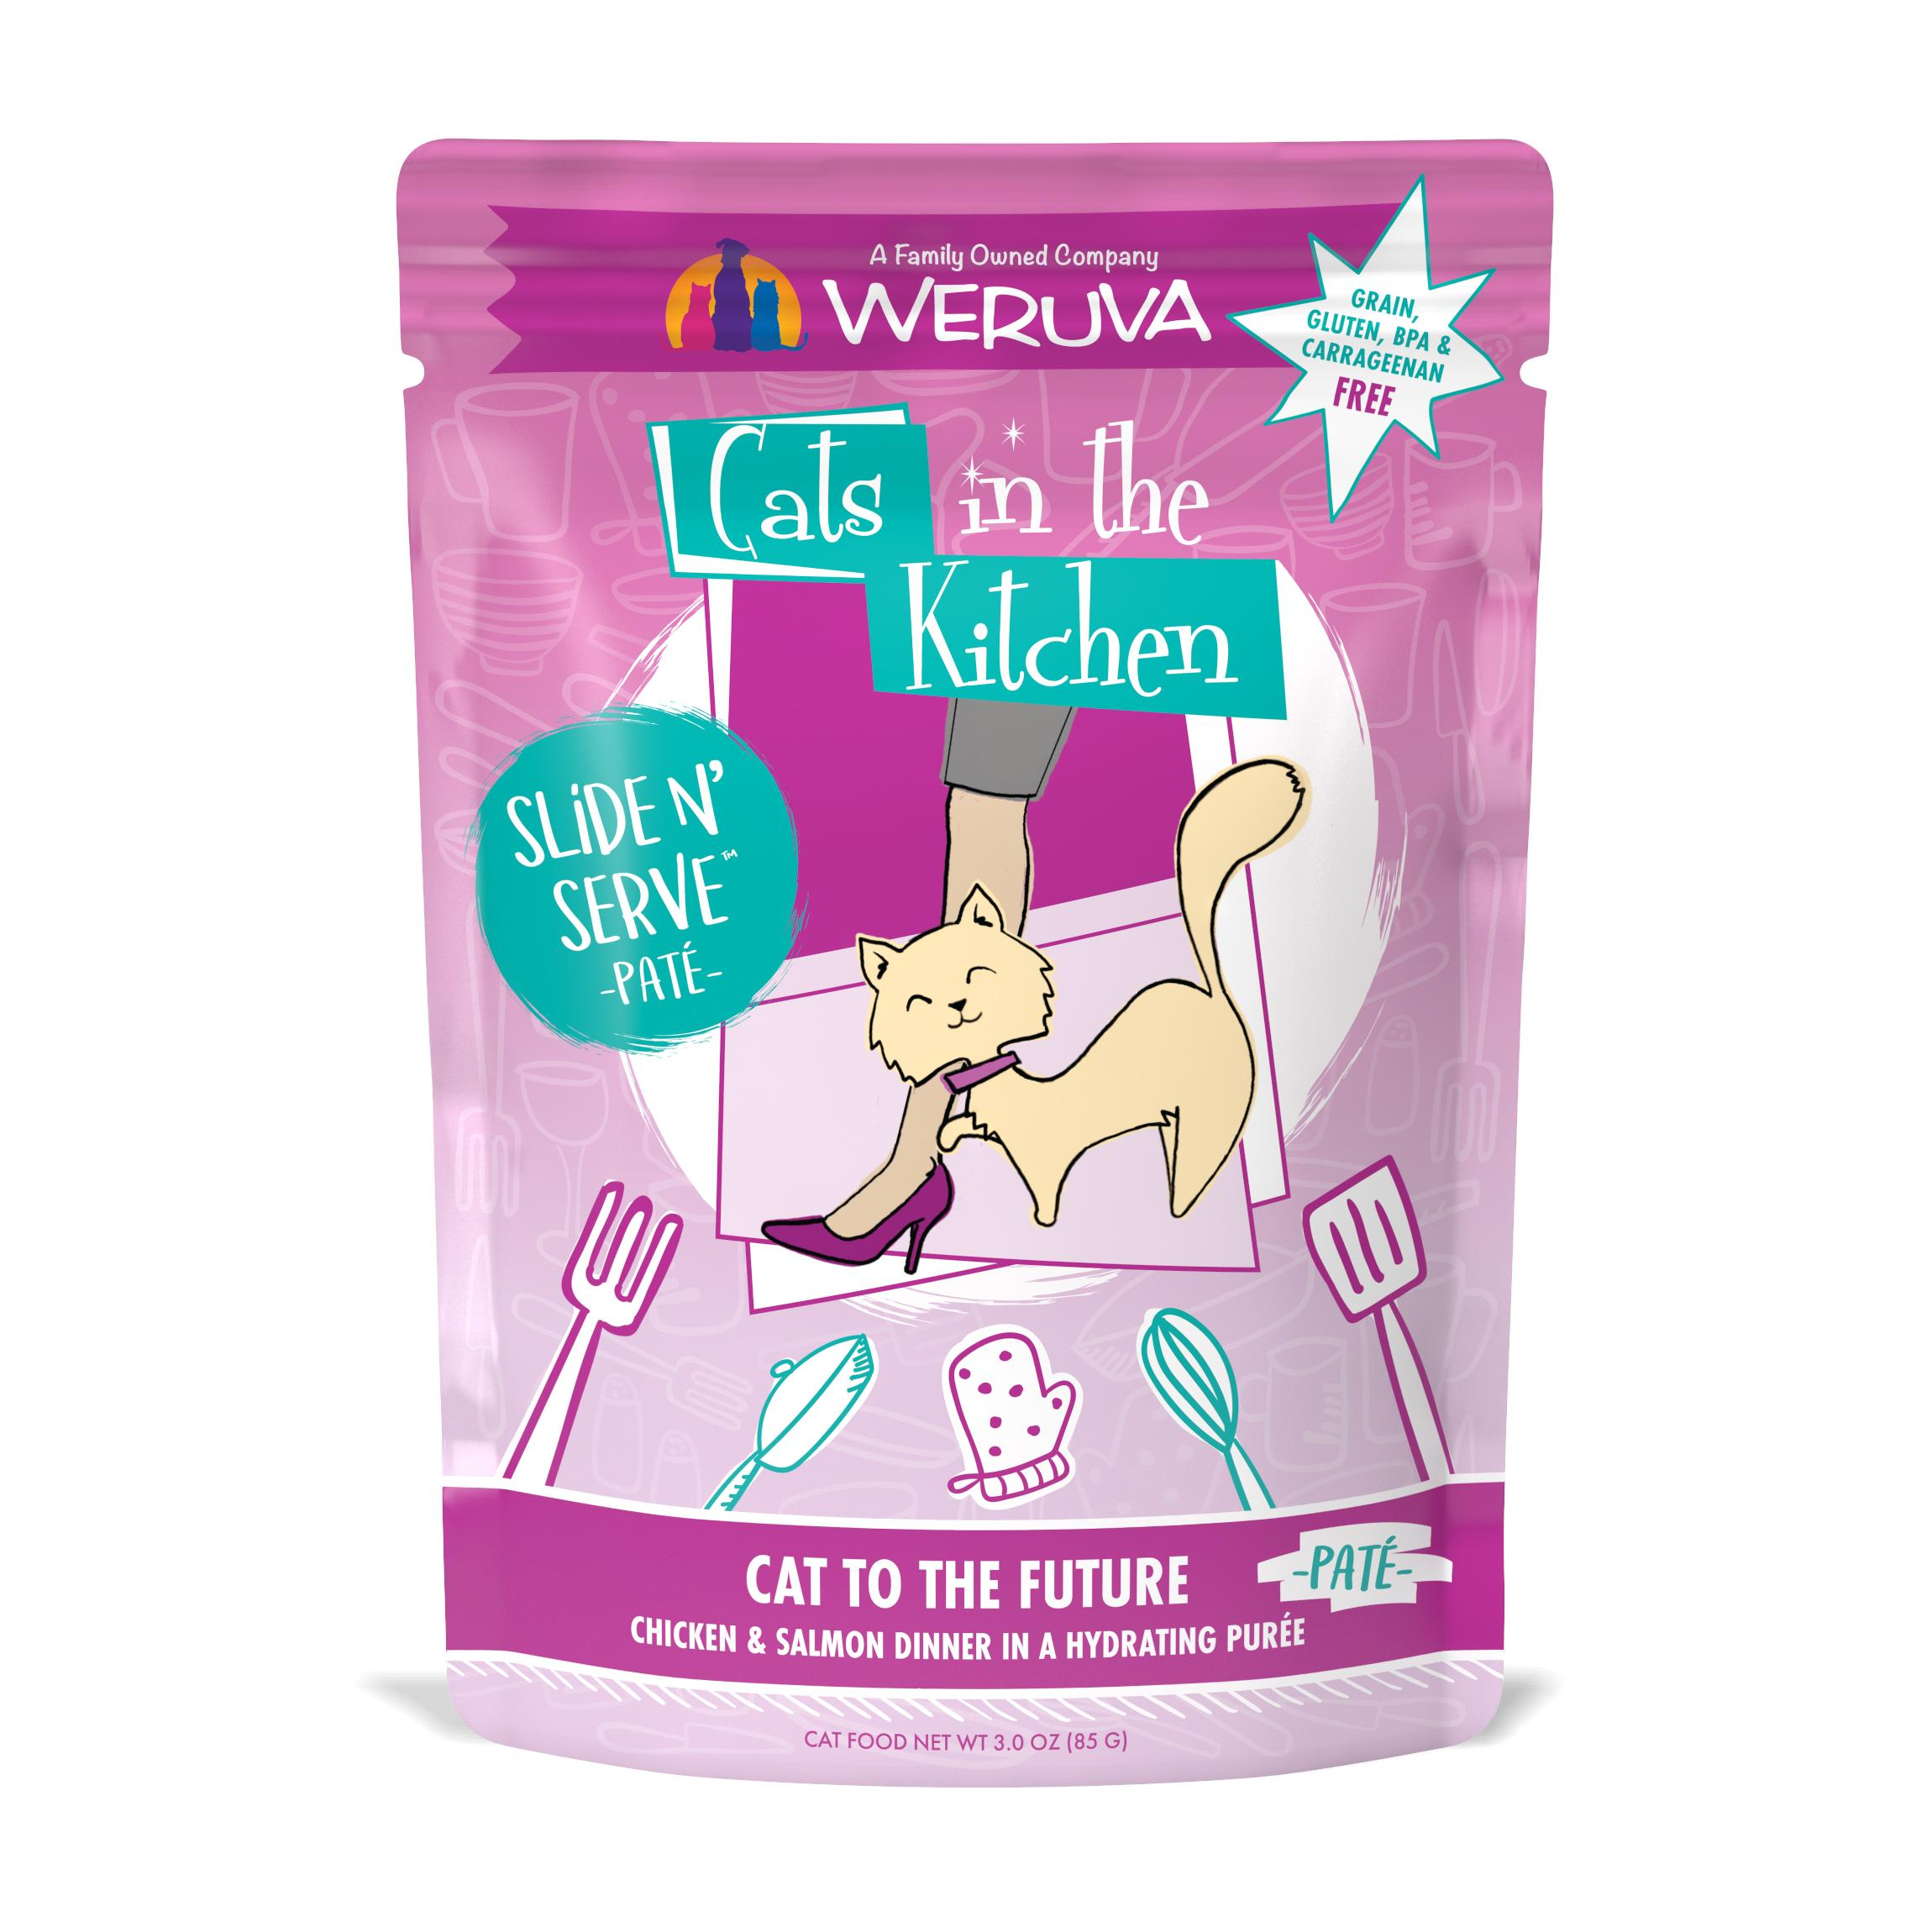 Weruva Cats In The Kitchen Pate Cat to The Future Chicken & Salmon Dinner in Puree Grain-Free Wet Cat Food, 3-oz pouch